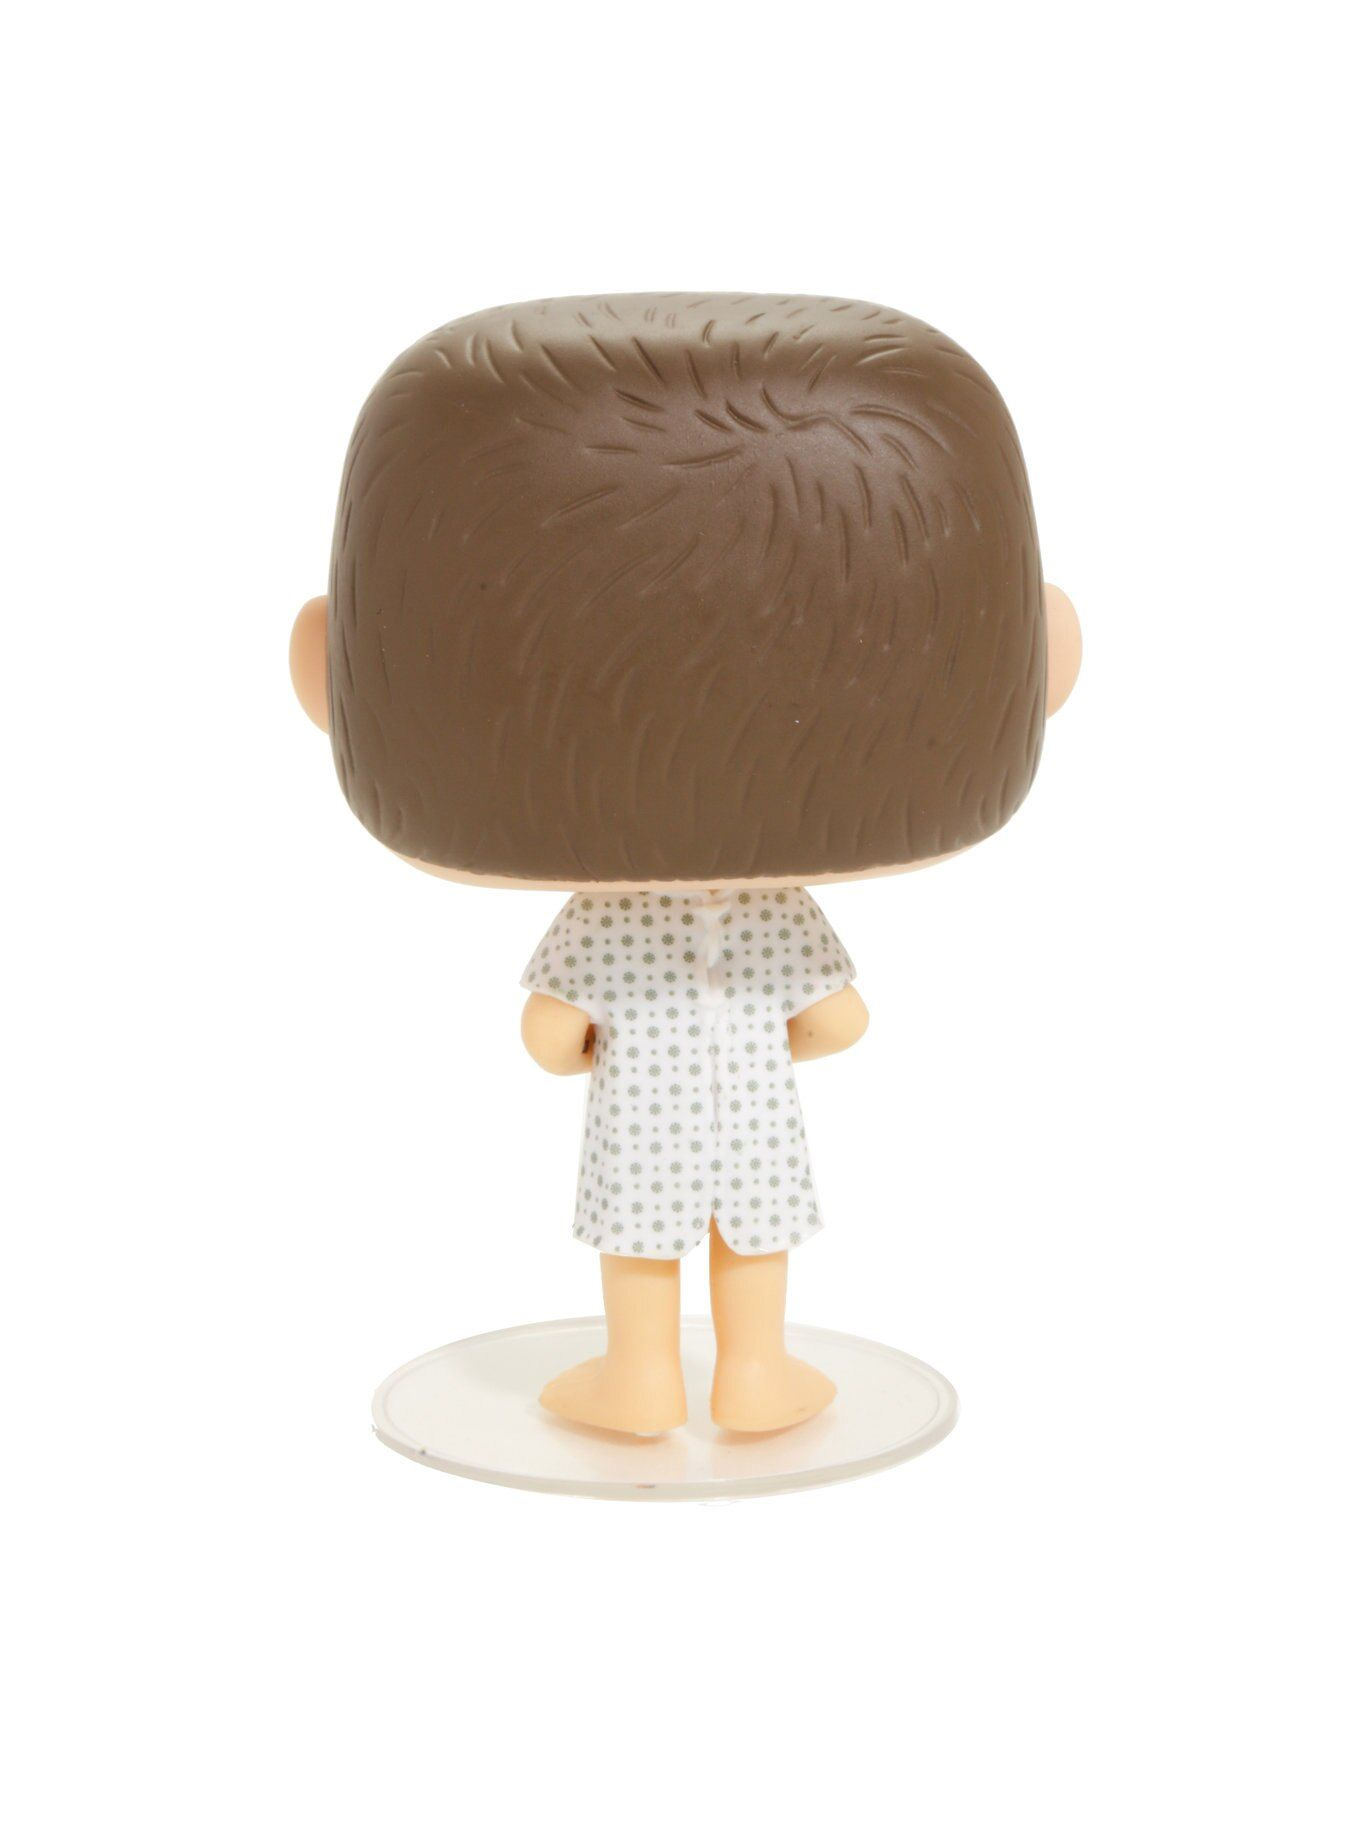 Eleven (Hospital Gown) #511 - Stranger Things - Funko Pop! Television